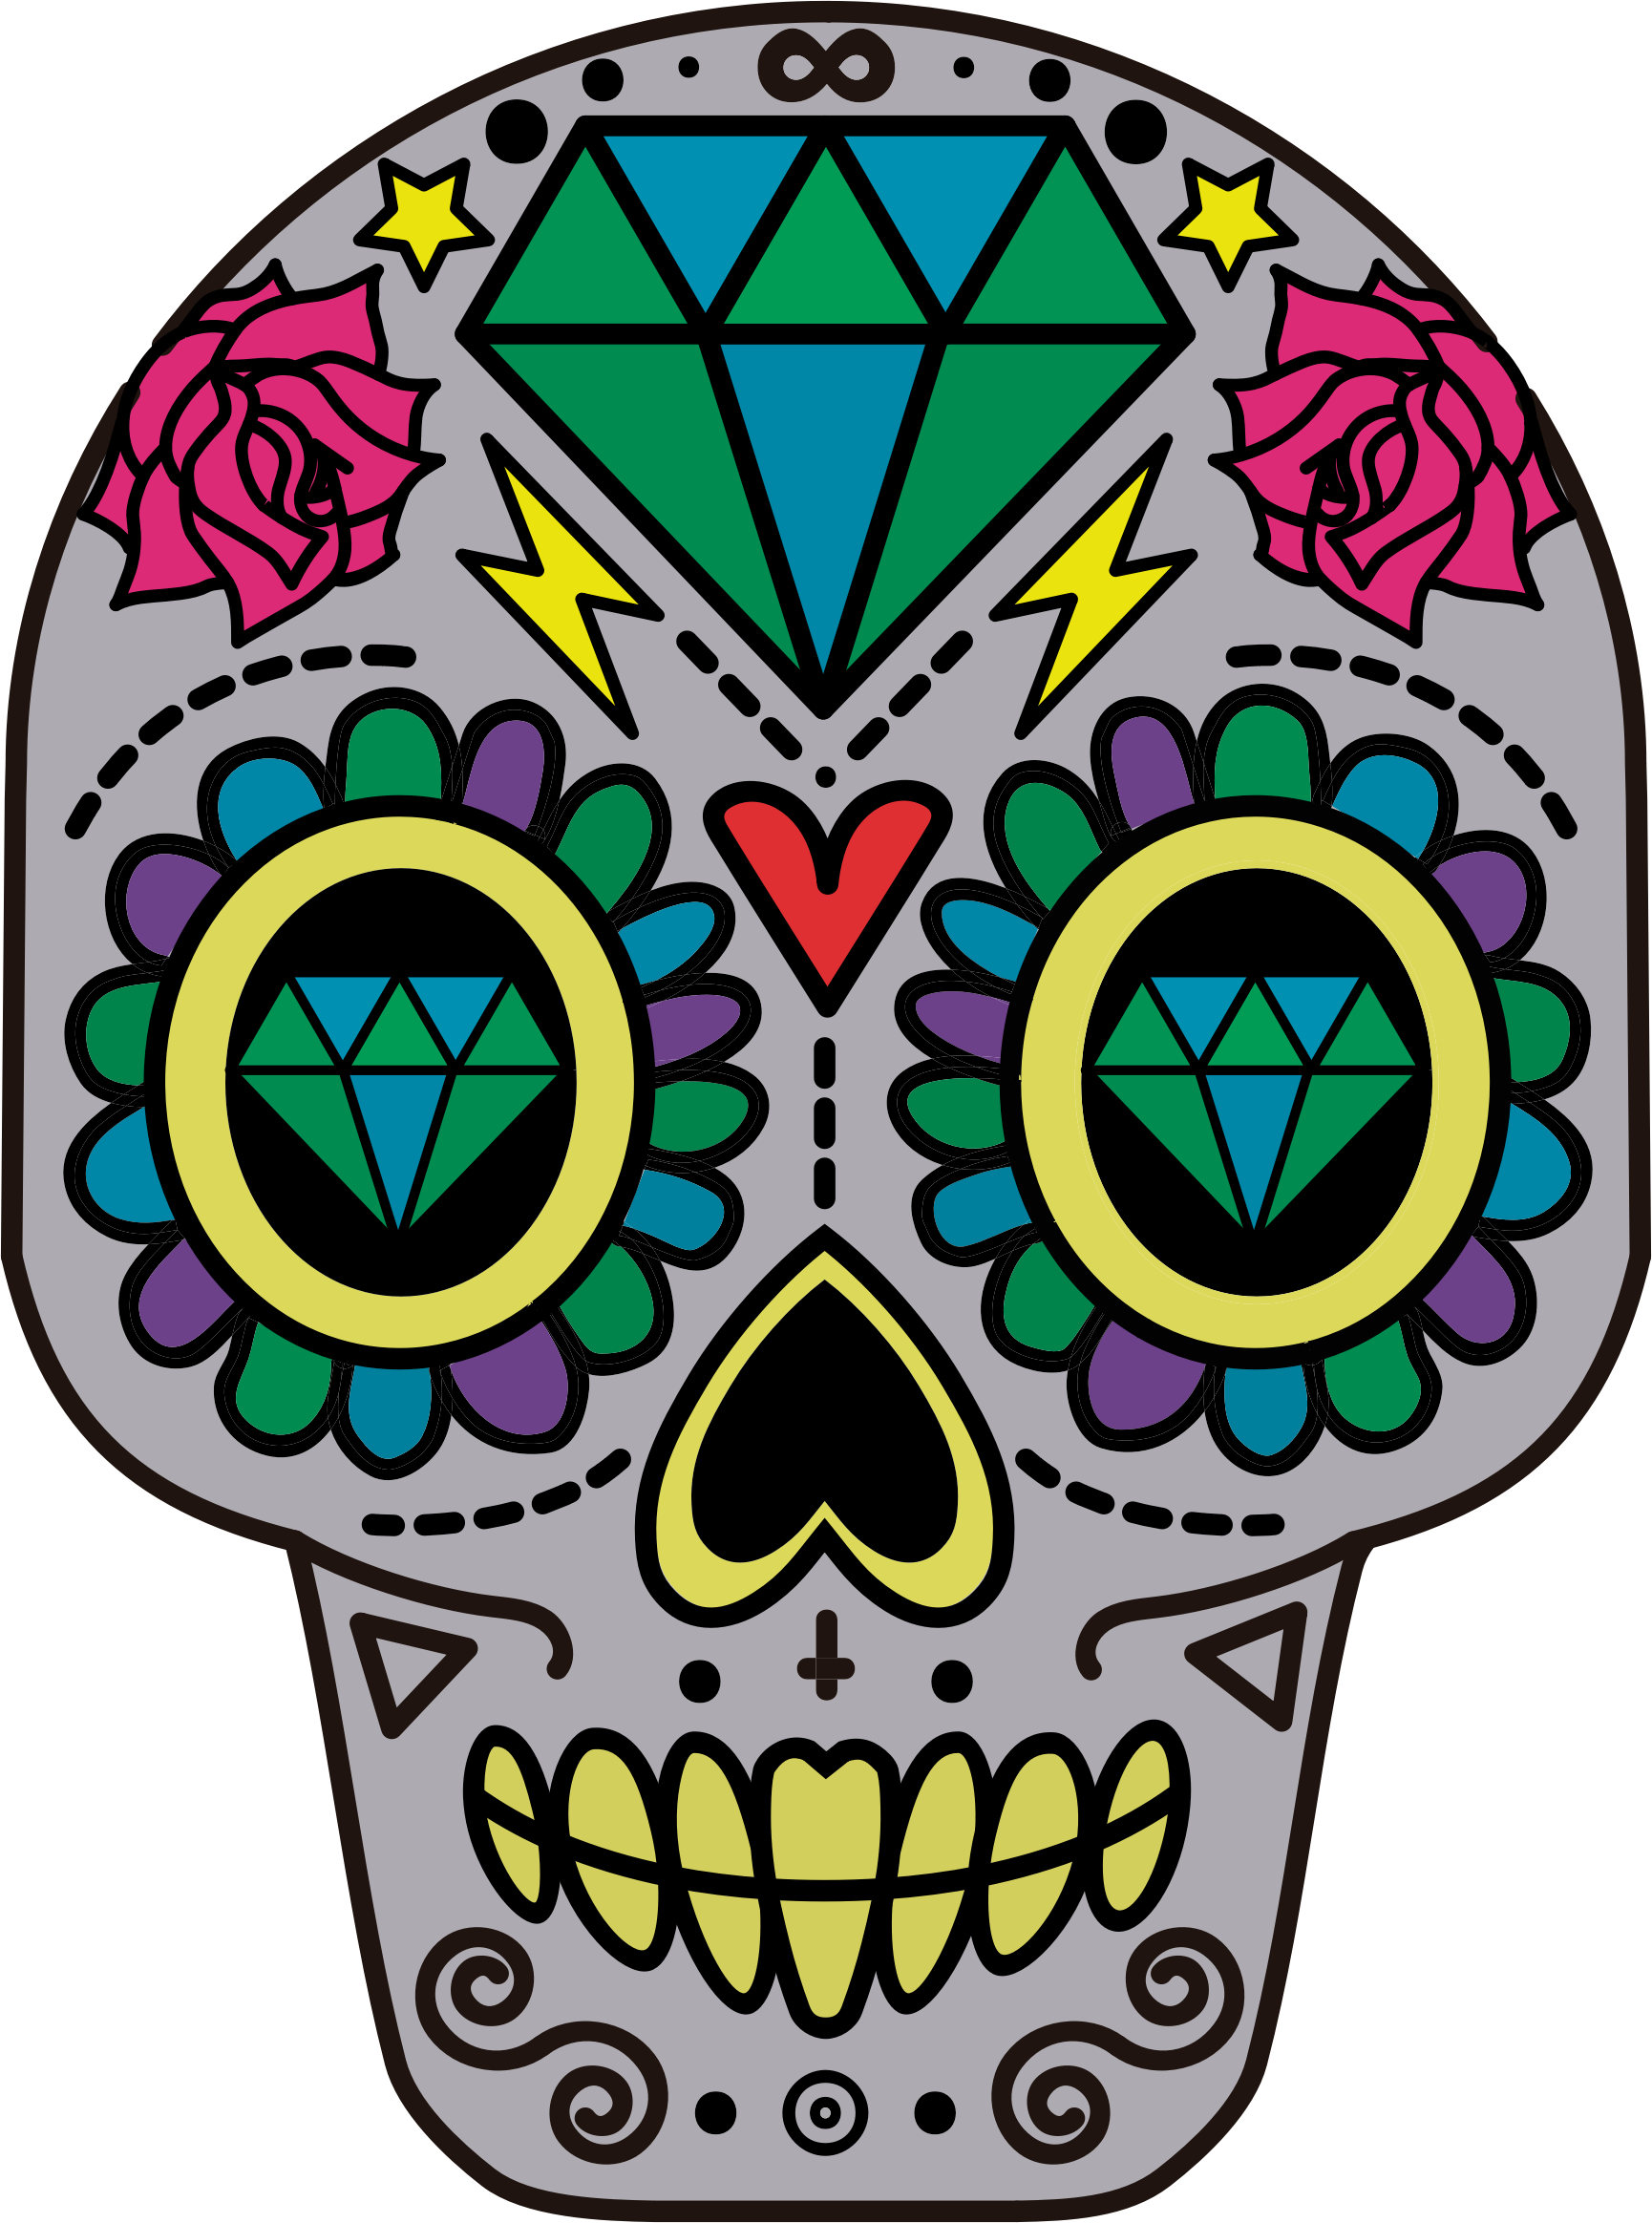 Day of the dead flower clipart vector transparent library La Calavera Catrina Skull Day of the Dead Paper - skulls 1730*2328 ... vector transparent library